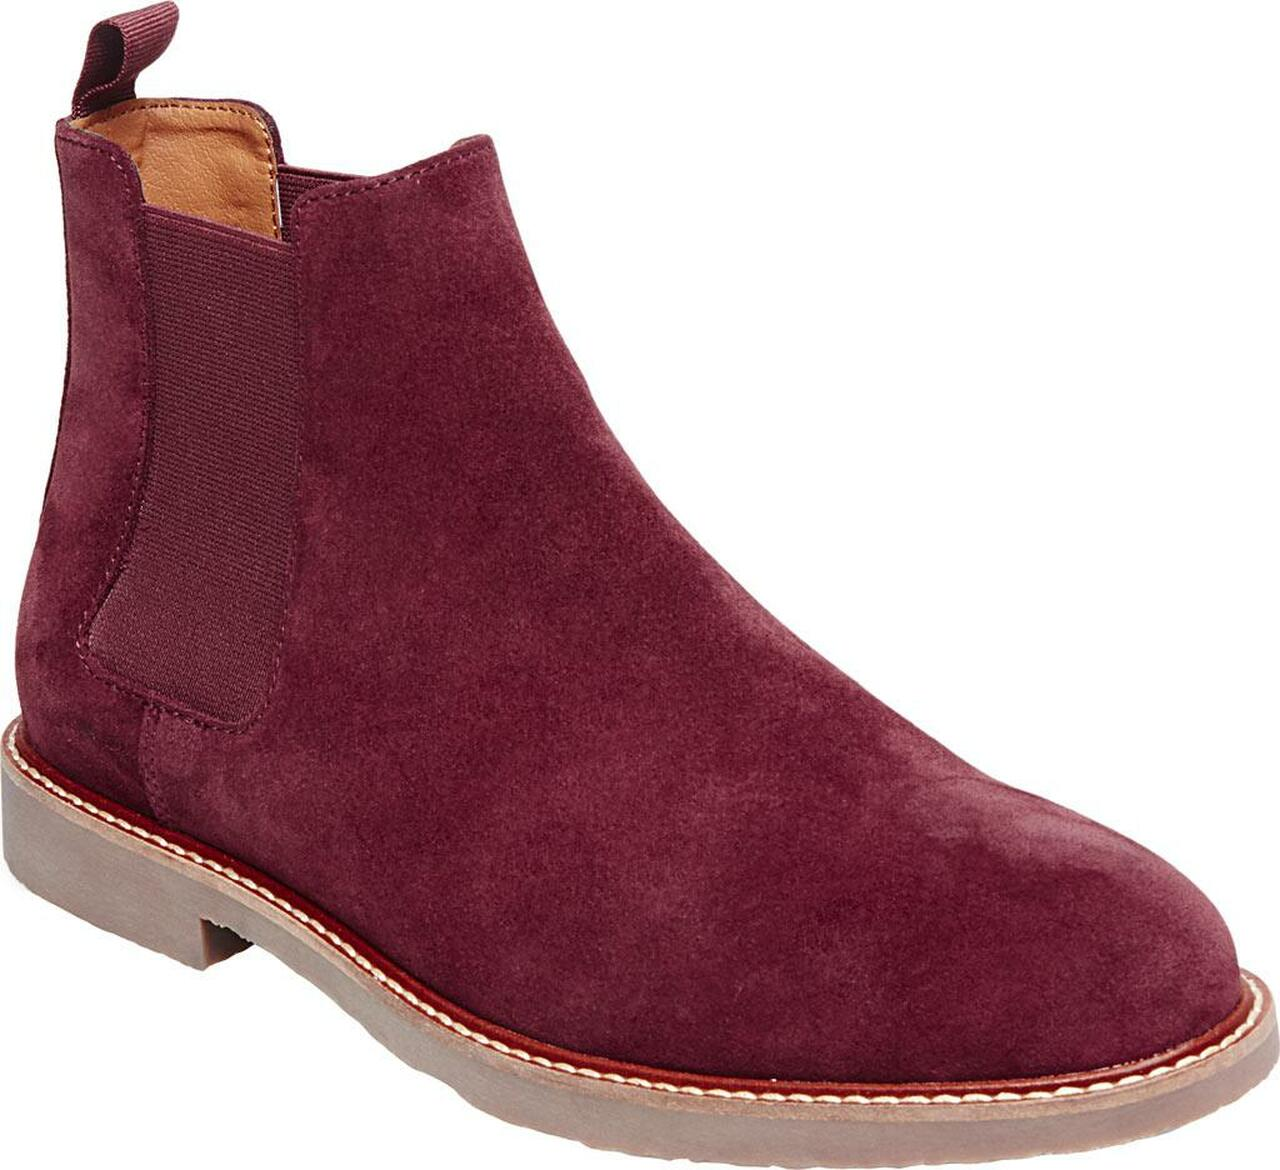 4e079095ad8 Steve Madden Mens Highline Leather Round Toe Ankle Chelsea Boots~pp-d08a1a8a